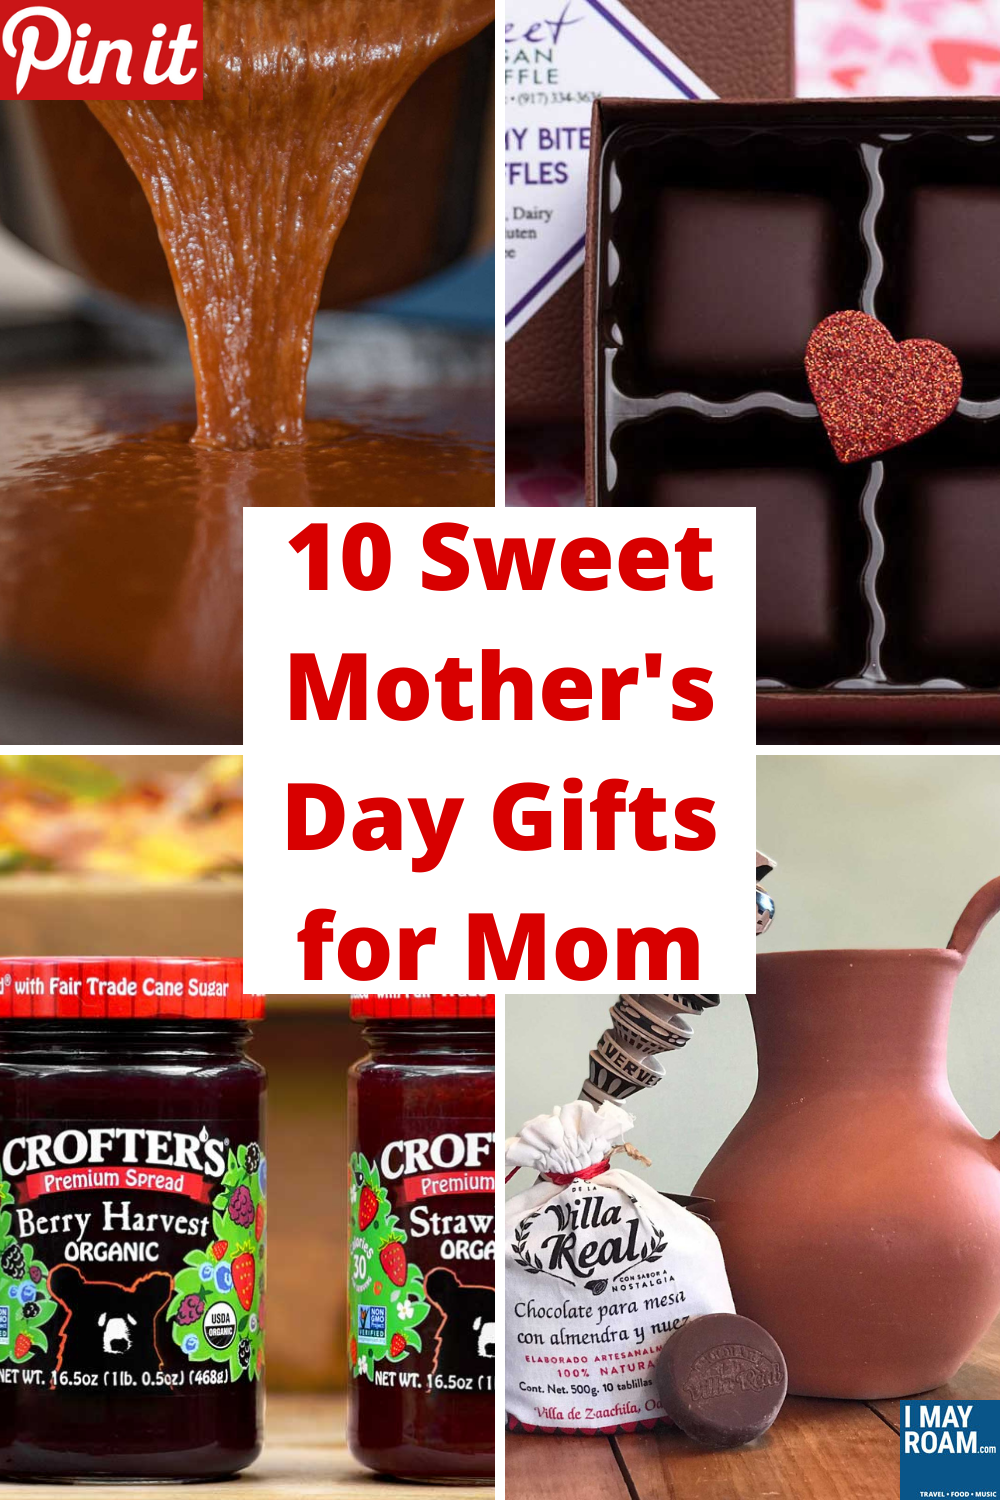 Pinterest 10 Sweet Mother's Day Gifts for Mom